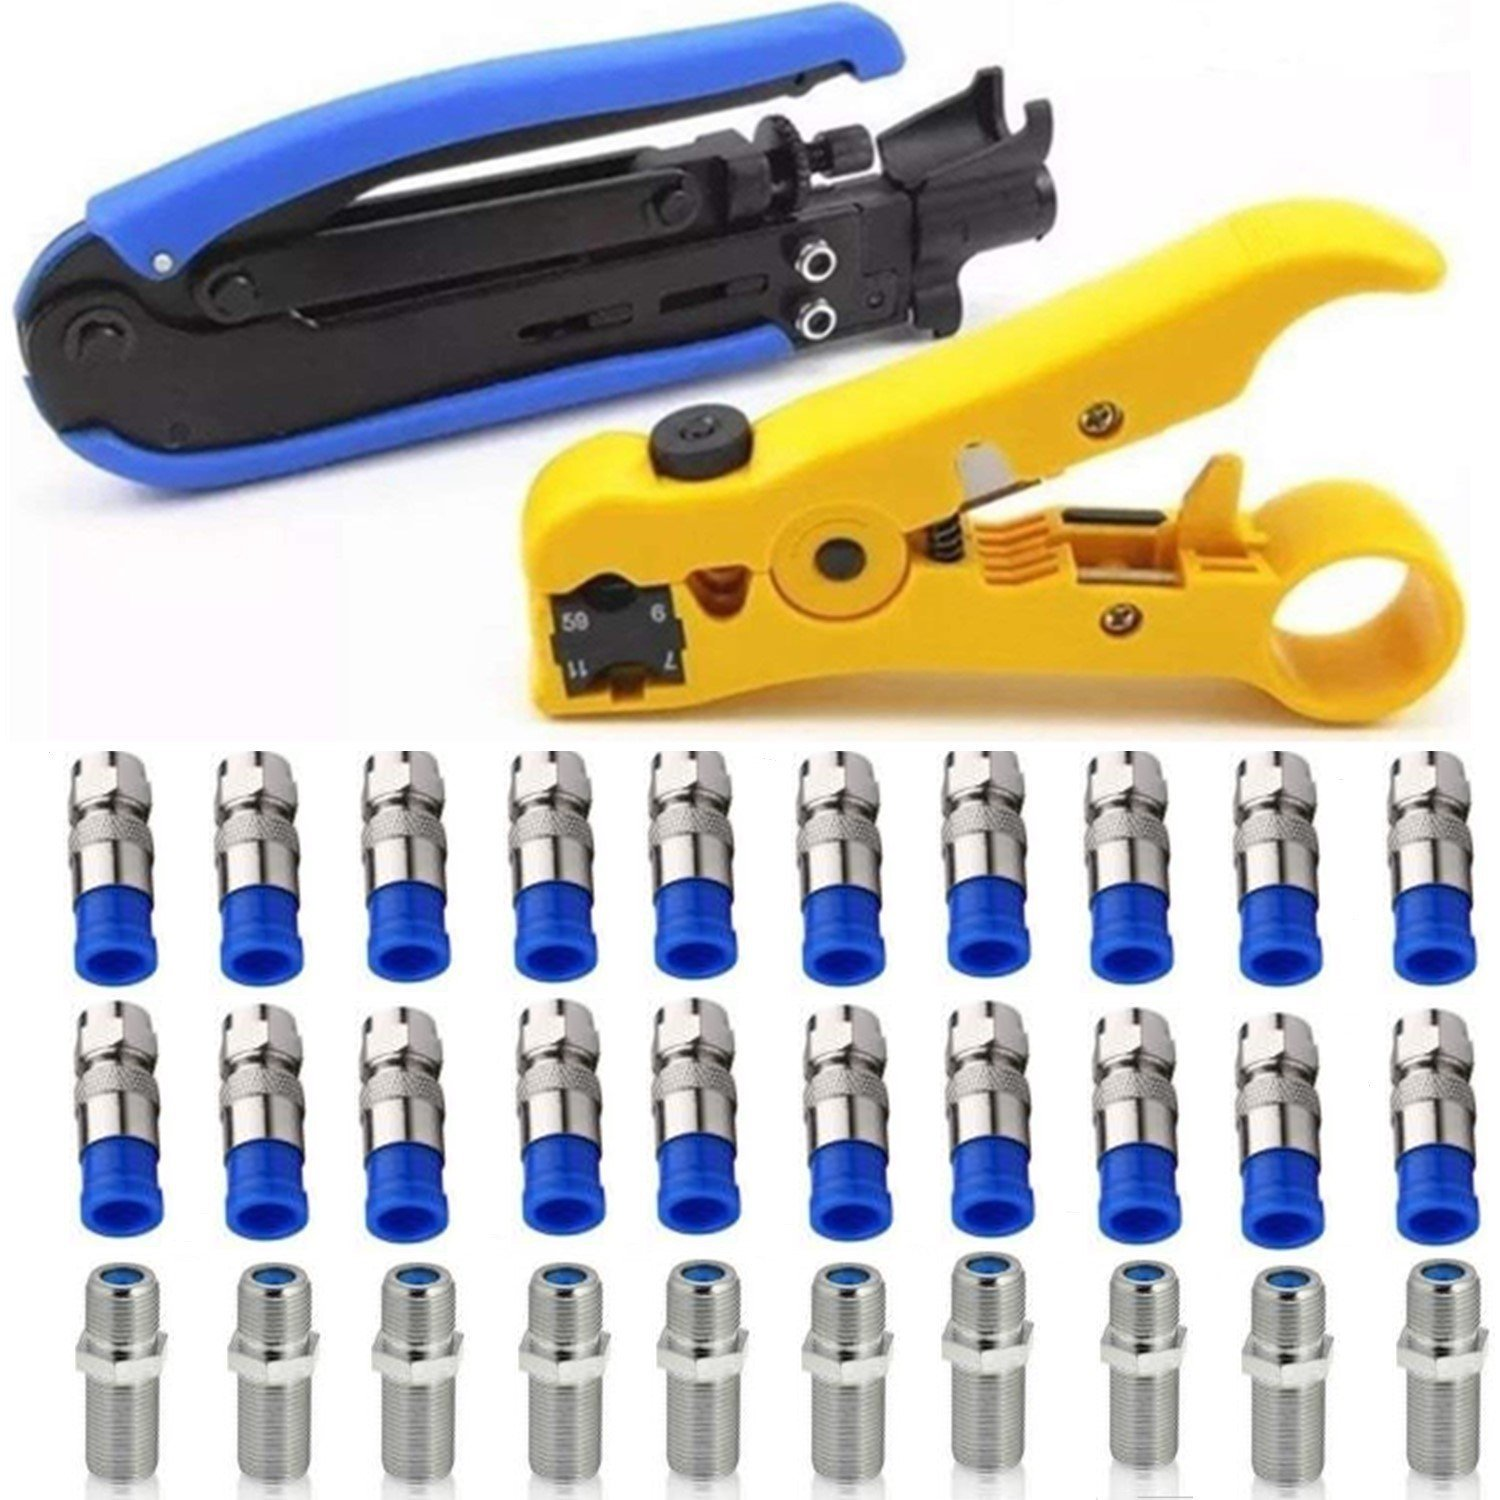 Coaxial Compression Tool Coax Cable Crimper Kit Adjustable RG6 RG59 RG11 75-5 75-7 Coaxial Cable Stripper with 20 PCS F Male And 10 PCS Female to Female RG6 Connectors by Gaobige